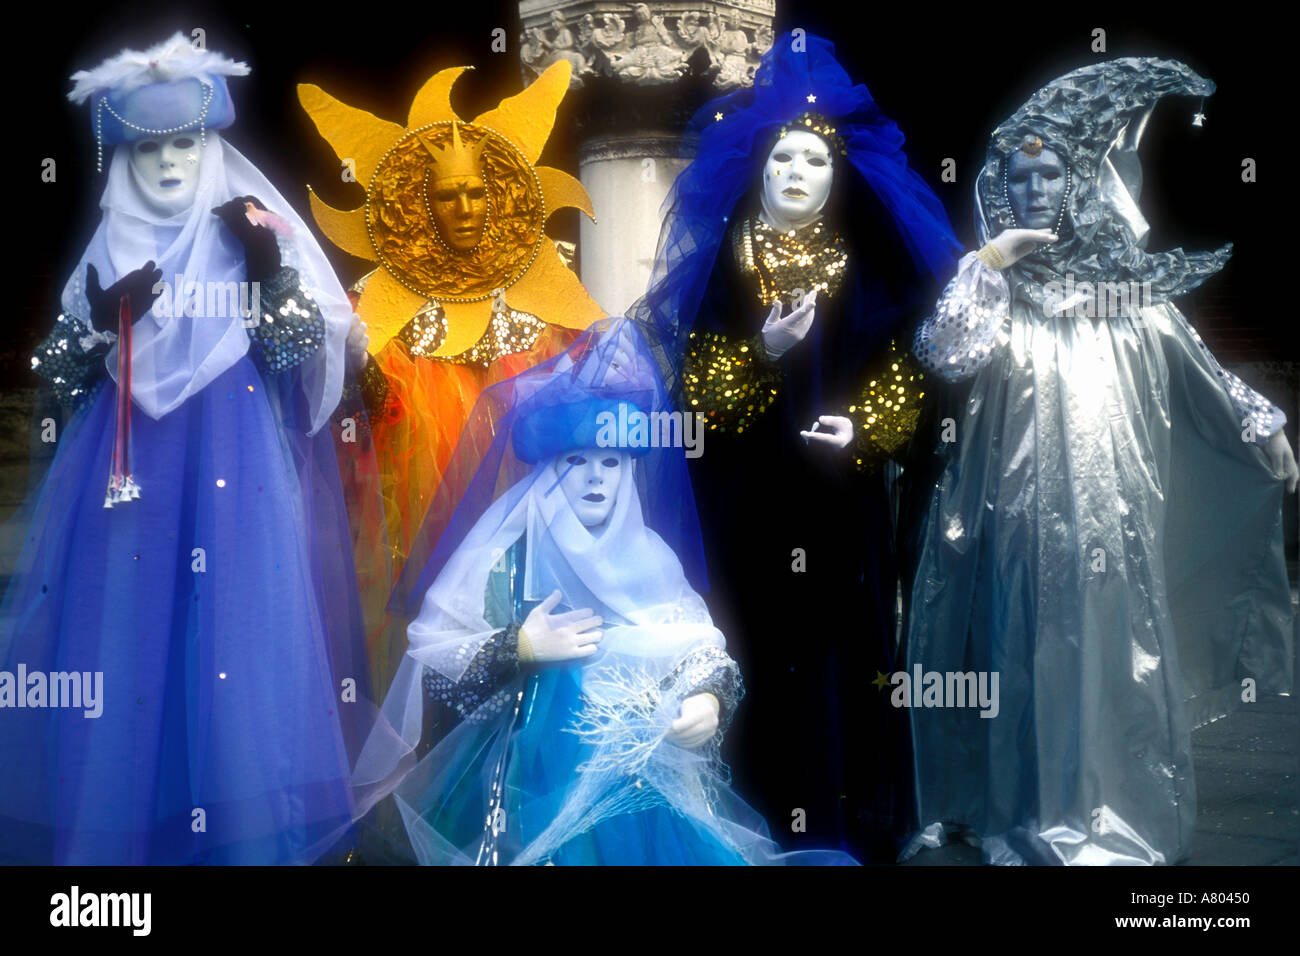 Group of five brightly coloured carnival revellers Earth Wind Fire Water Stars etc Venice carnival Venice Italy - Stock Image